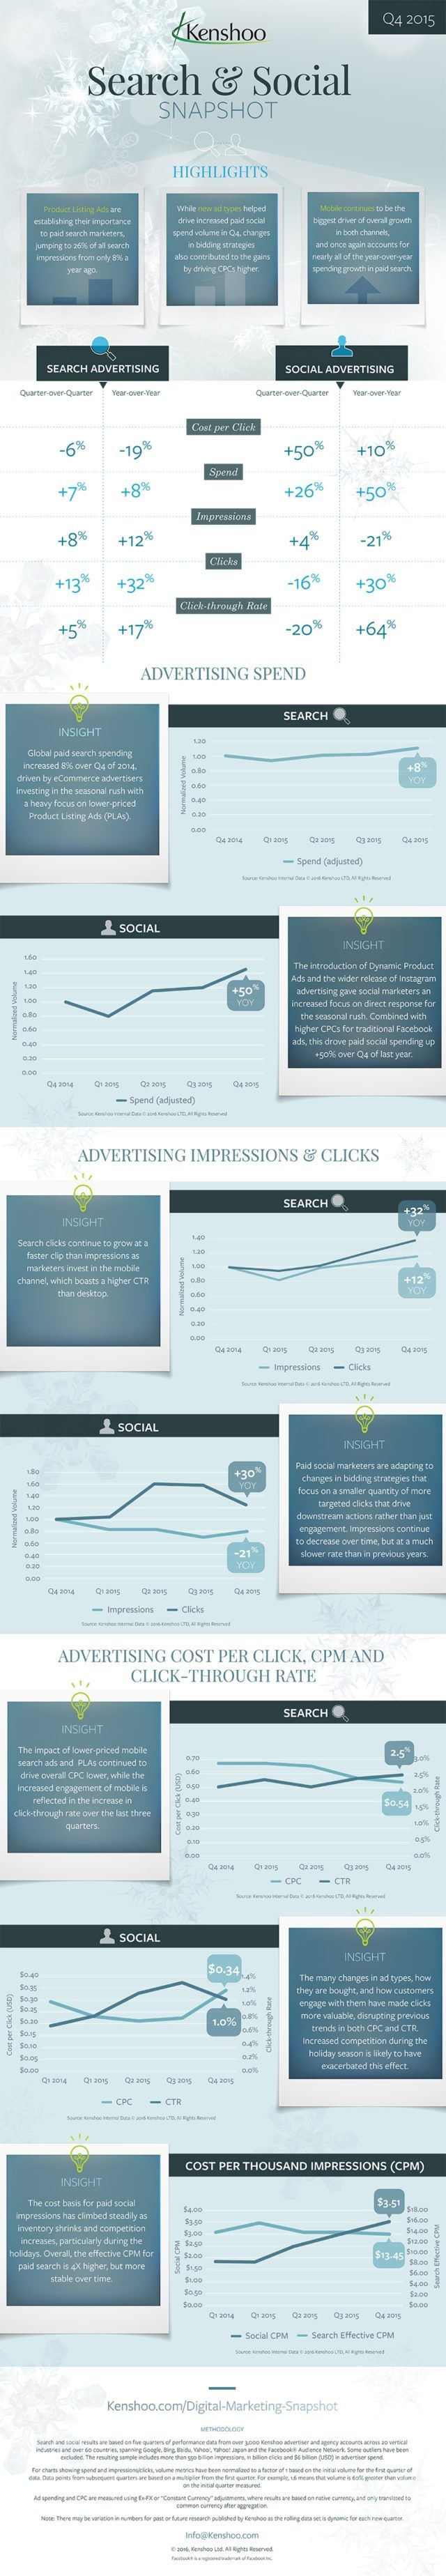 Search and Social Paid Advertising Trends